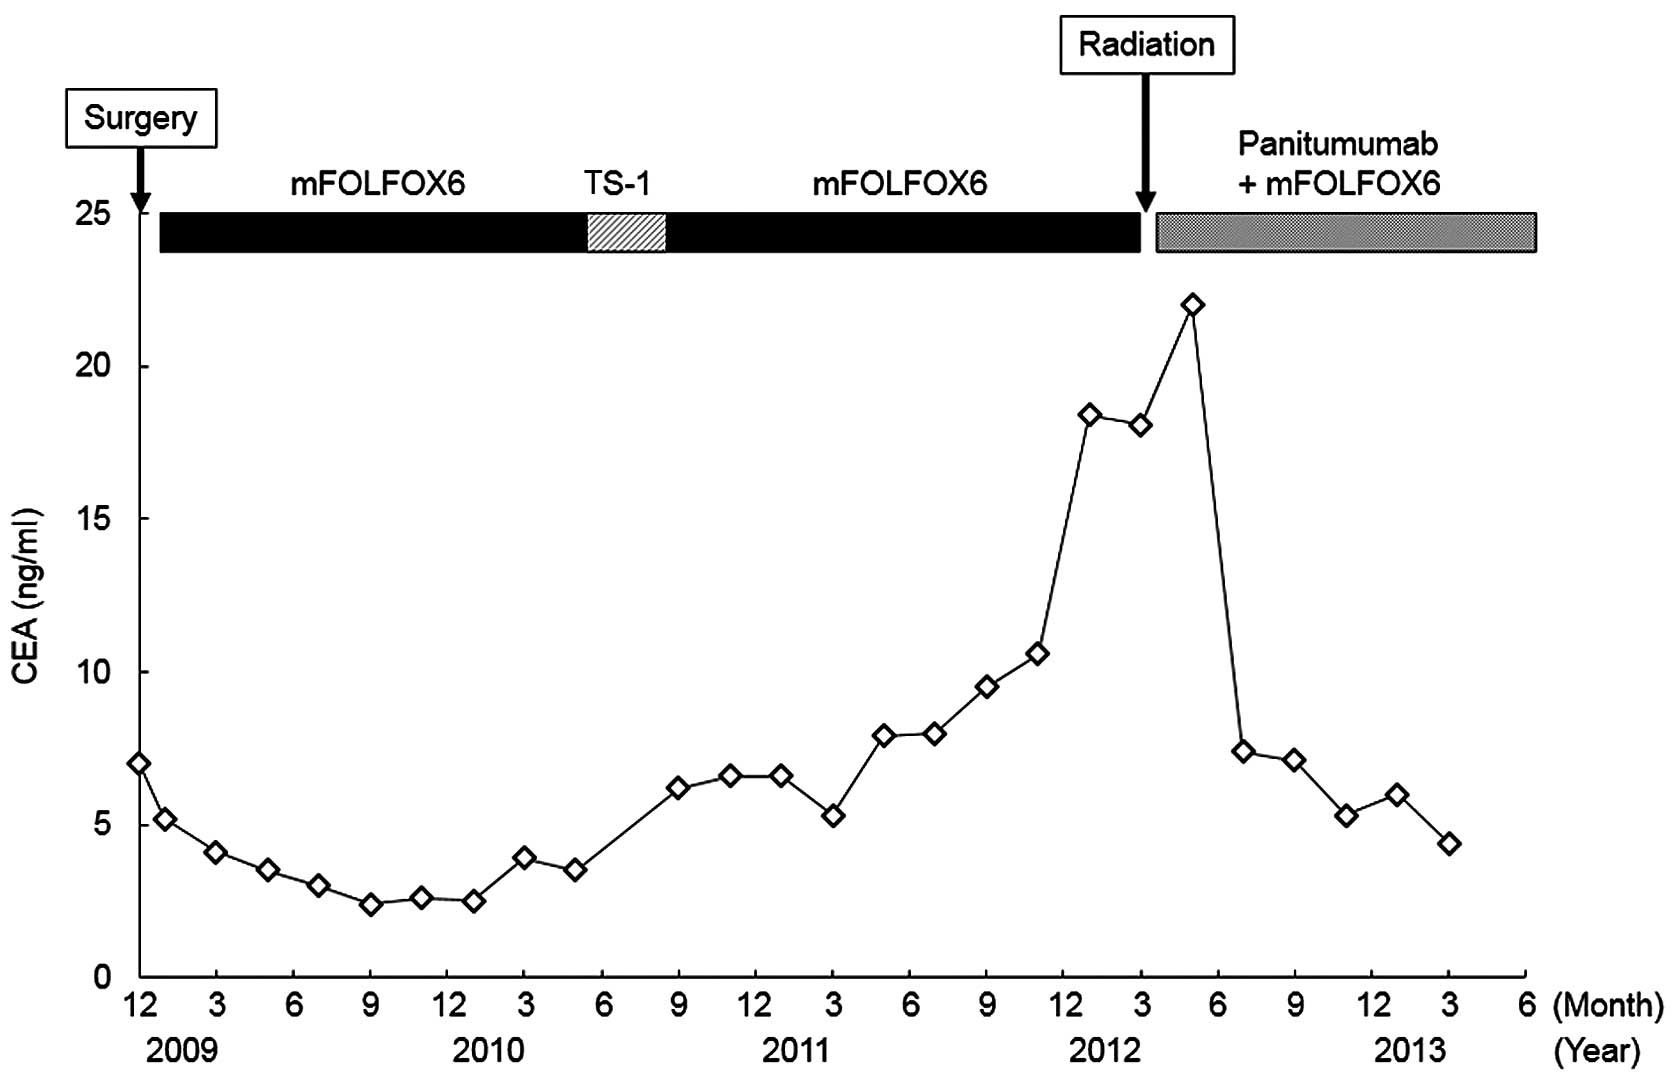 Long Term Administration And Efficacy Of Oxaliplatin With No Neurotoxicity In A Patient With Rectal Cancer Association Between Neurotoxicity And The Gstp1 Polymorphism